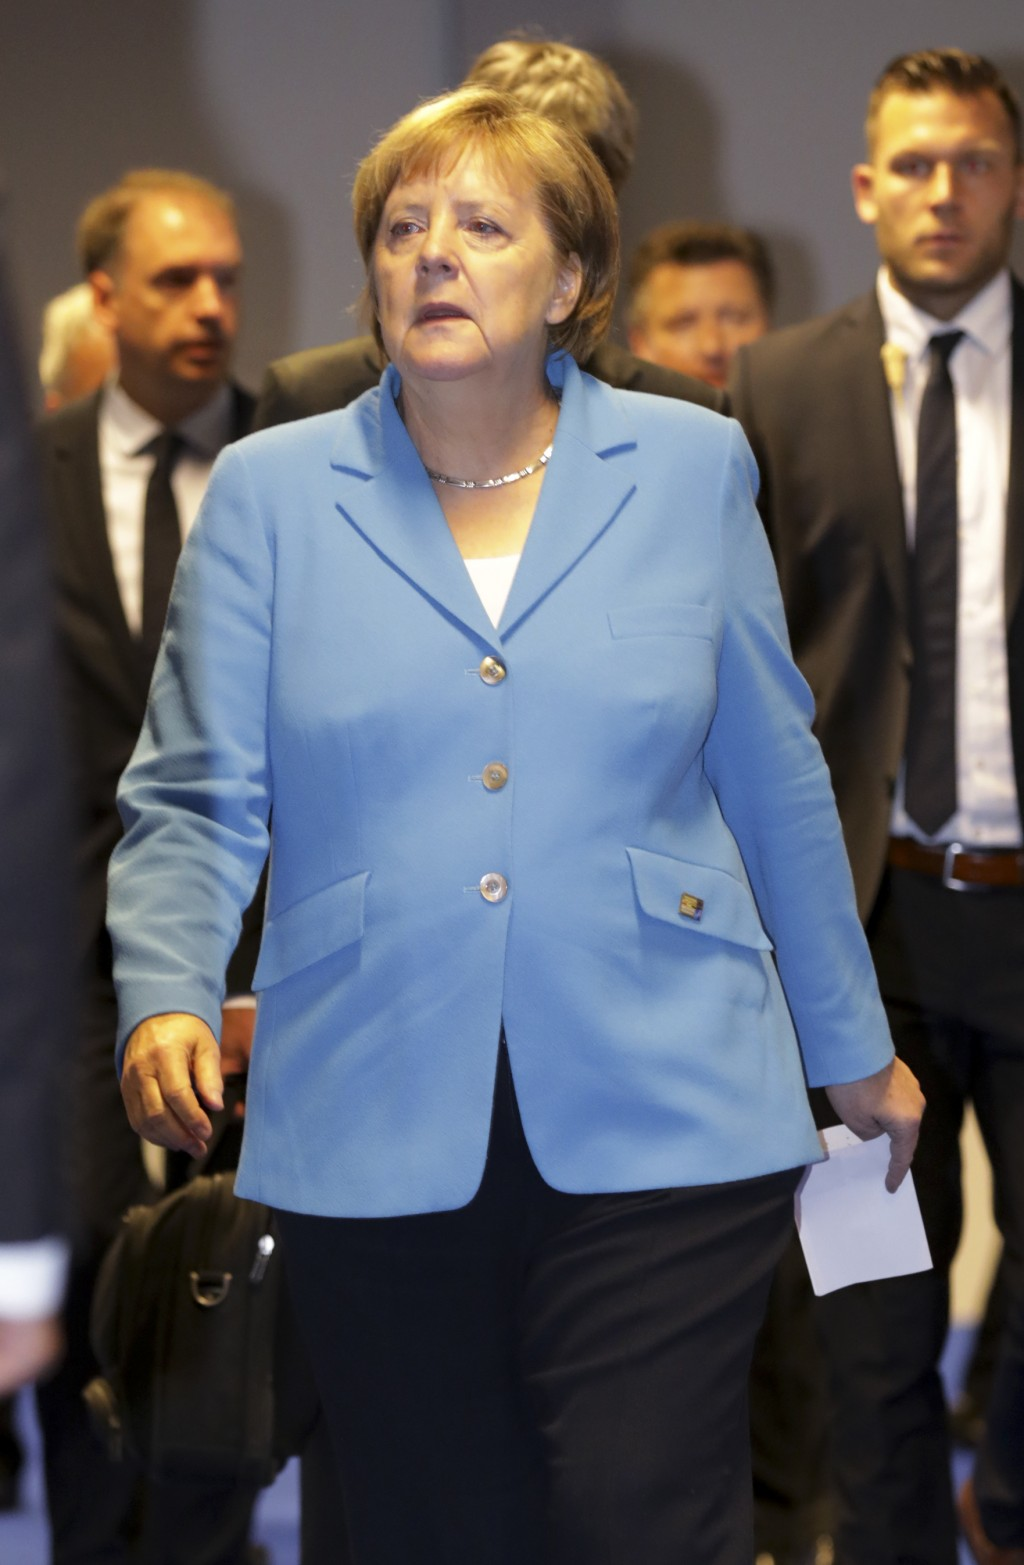 German Chancellor Angela Merkel walks during a summit of heads of state and government at NATO headquarters in Brussels, Belgium, Thursday, July 12, 2